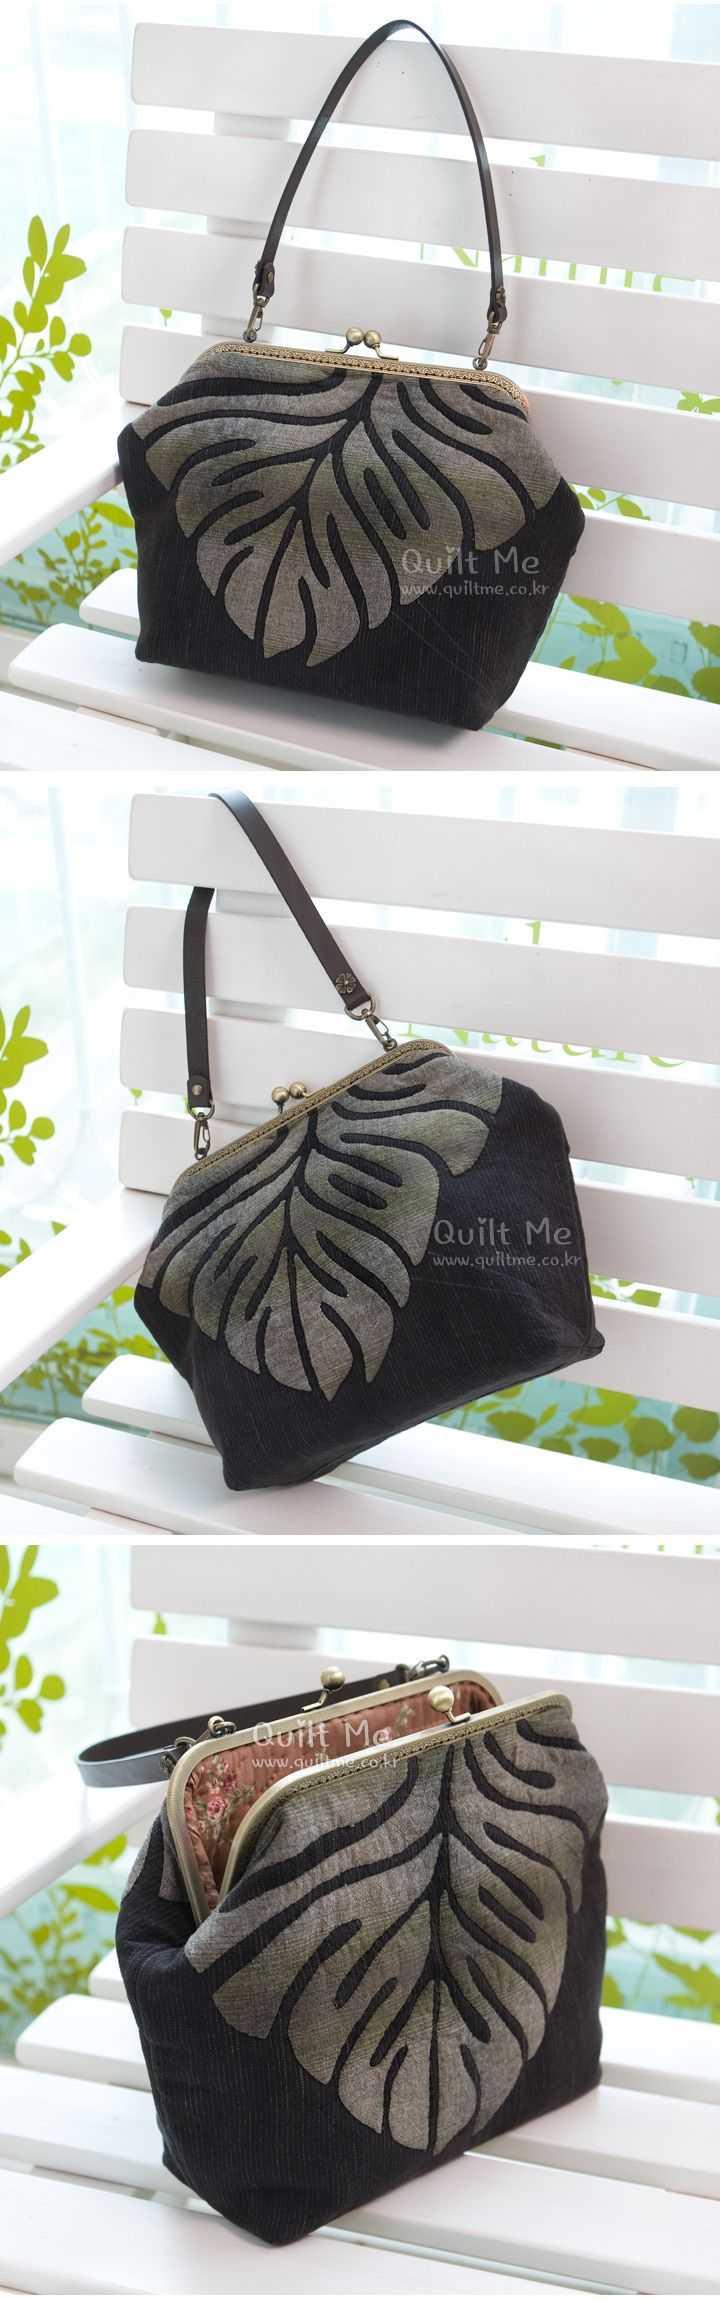 Lovely applique bag! Japanese quilter